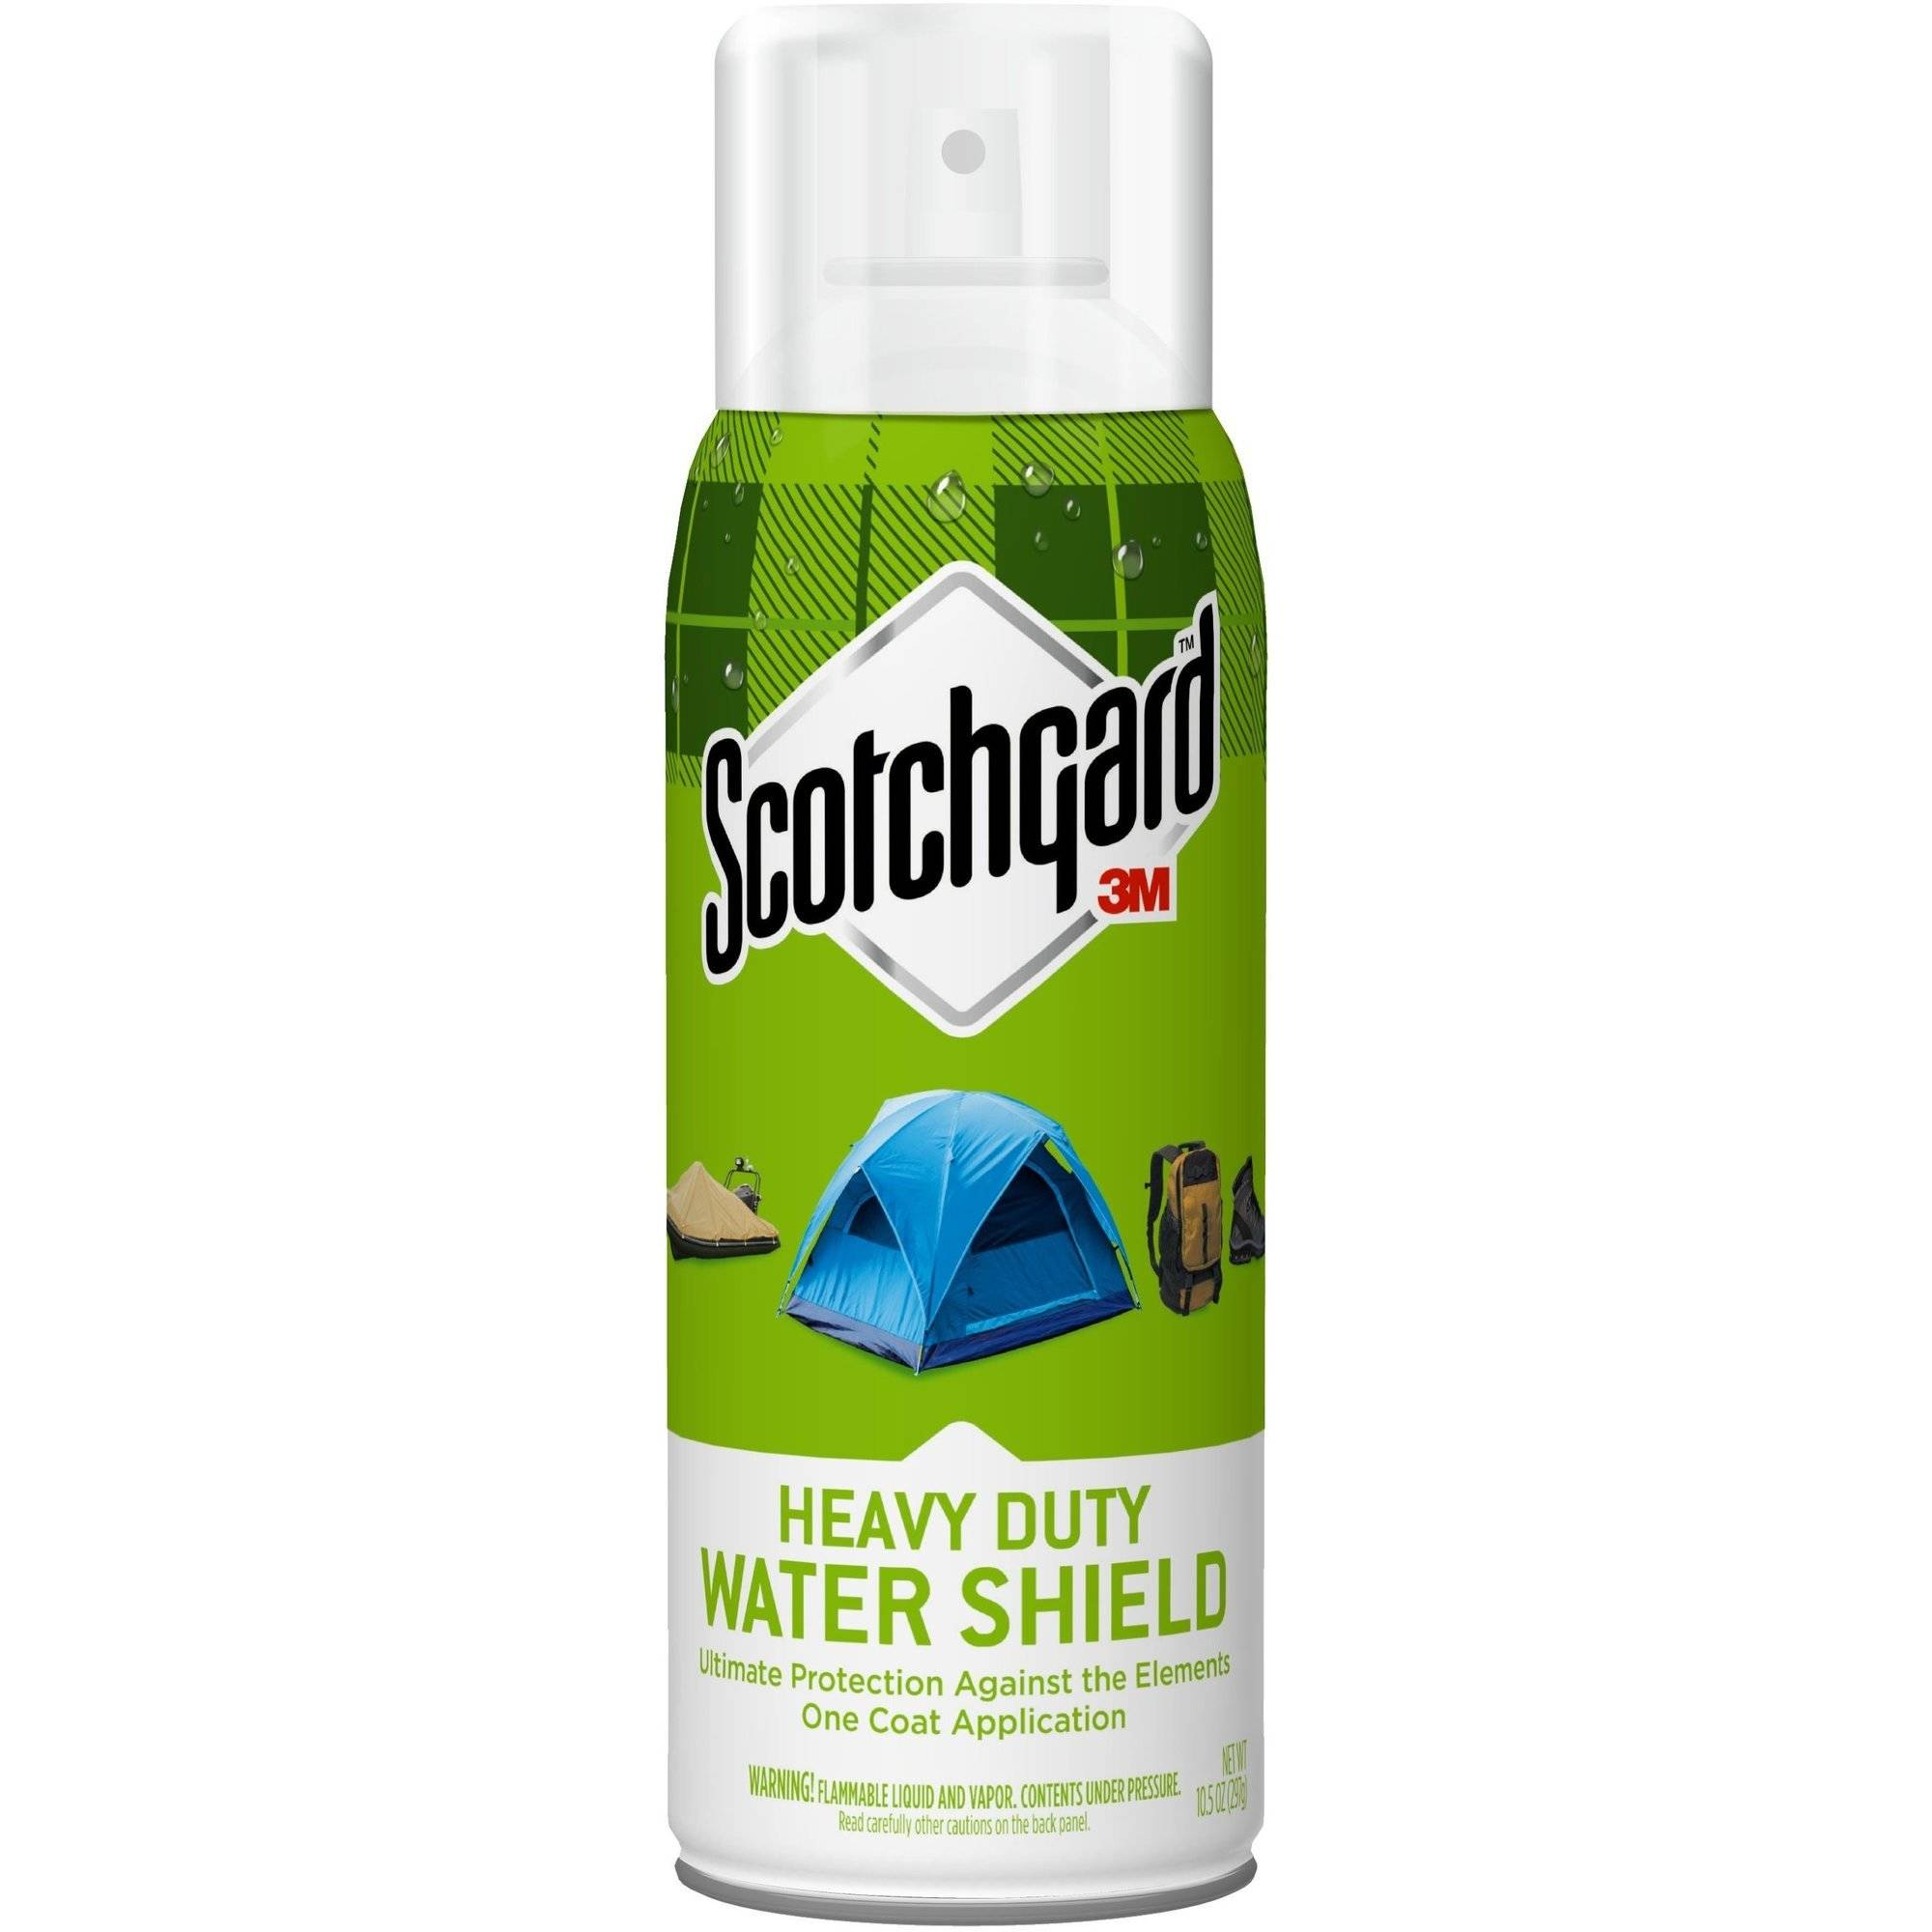 Scotchgard Heavy Duty Water Shield Spray, 10.5 oz., 1 Can